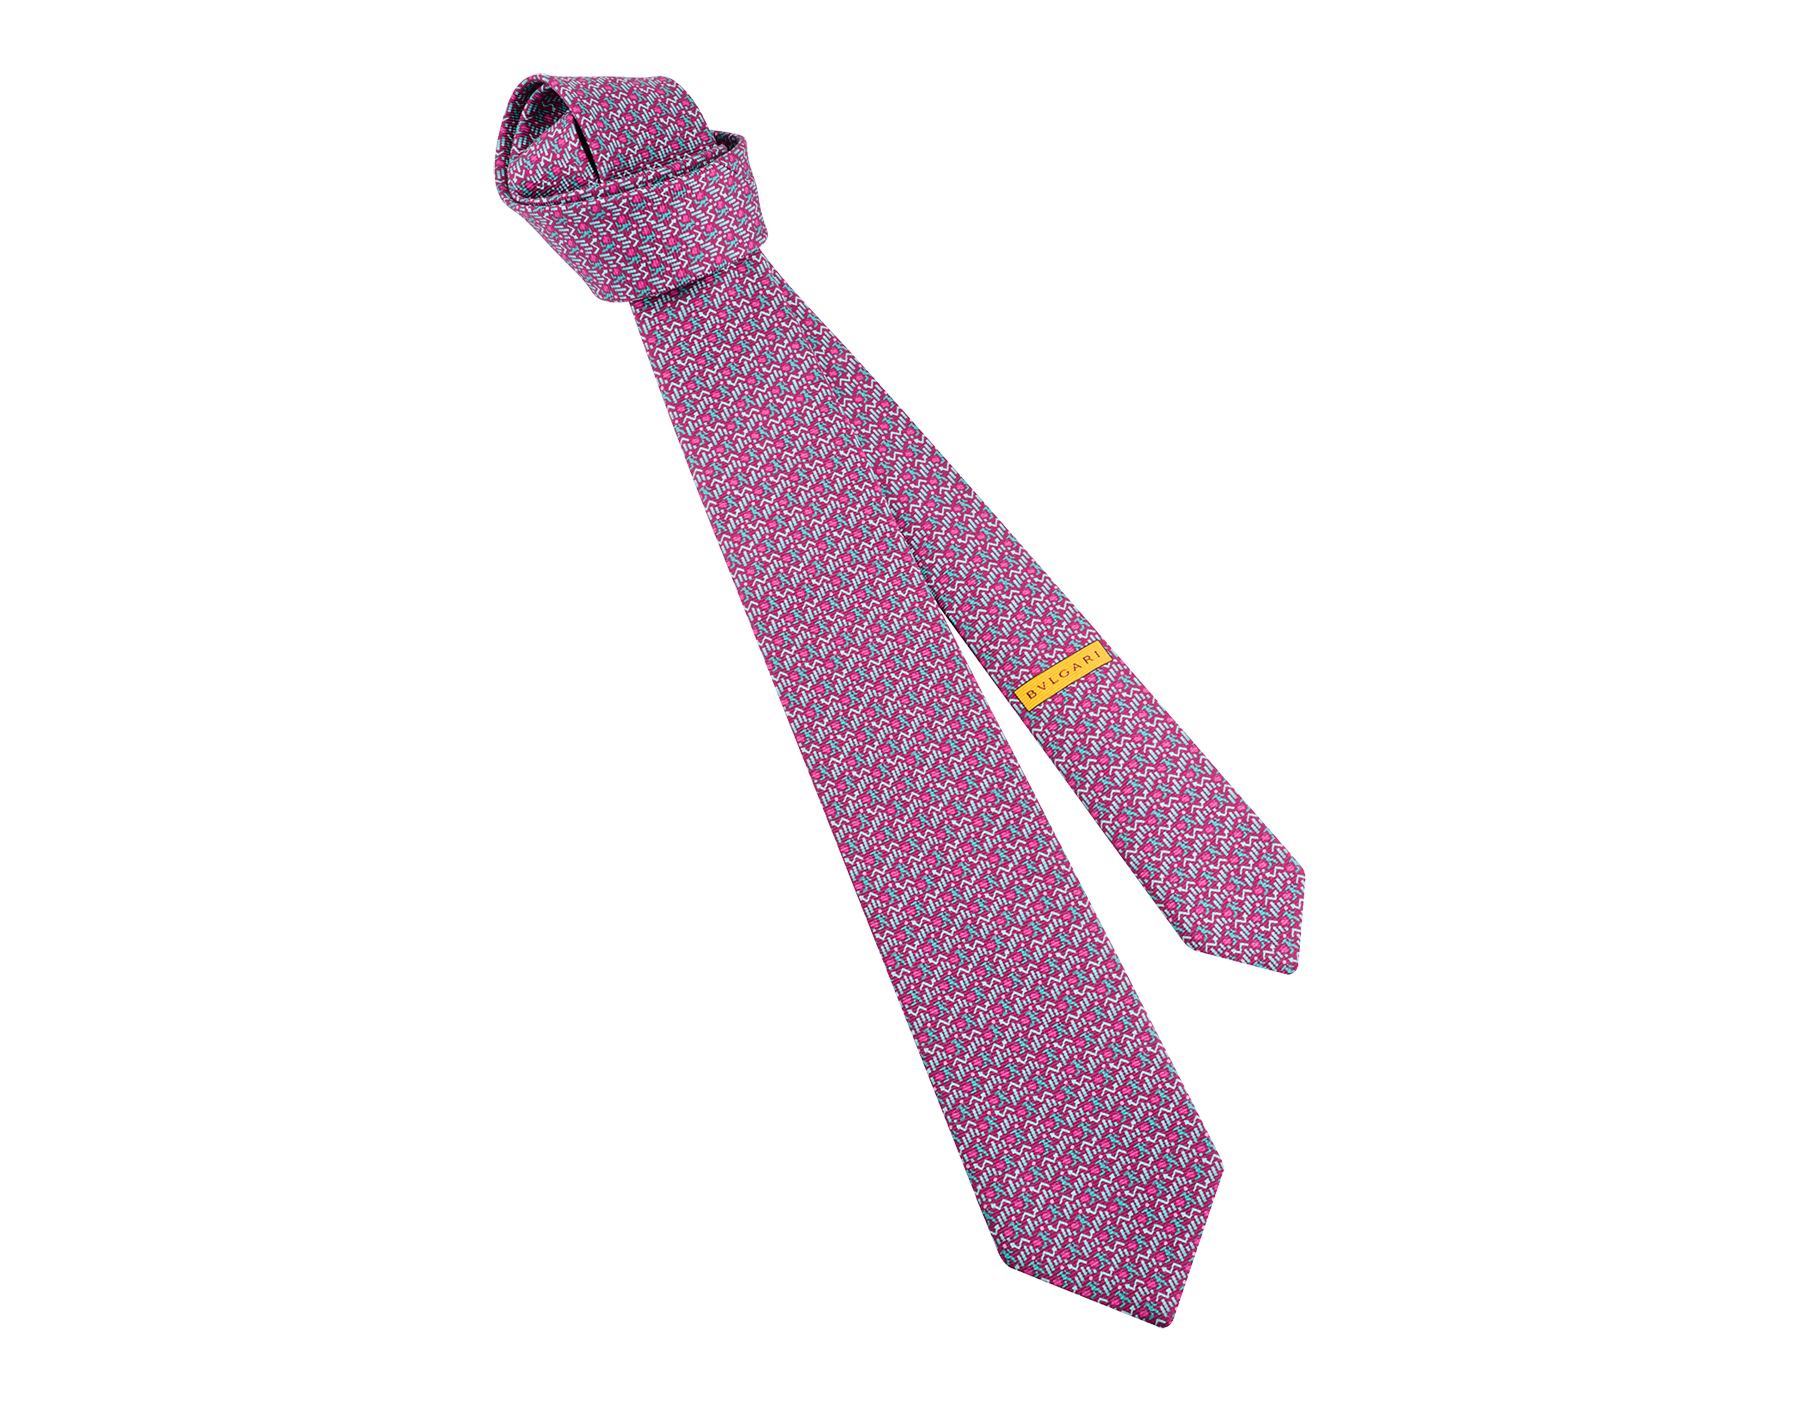 Fuchsia Running Business pattern seven-folds tie in fine saglione printed silk. 243655 image 1